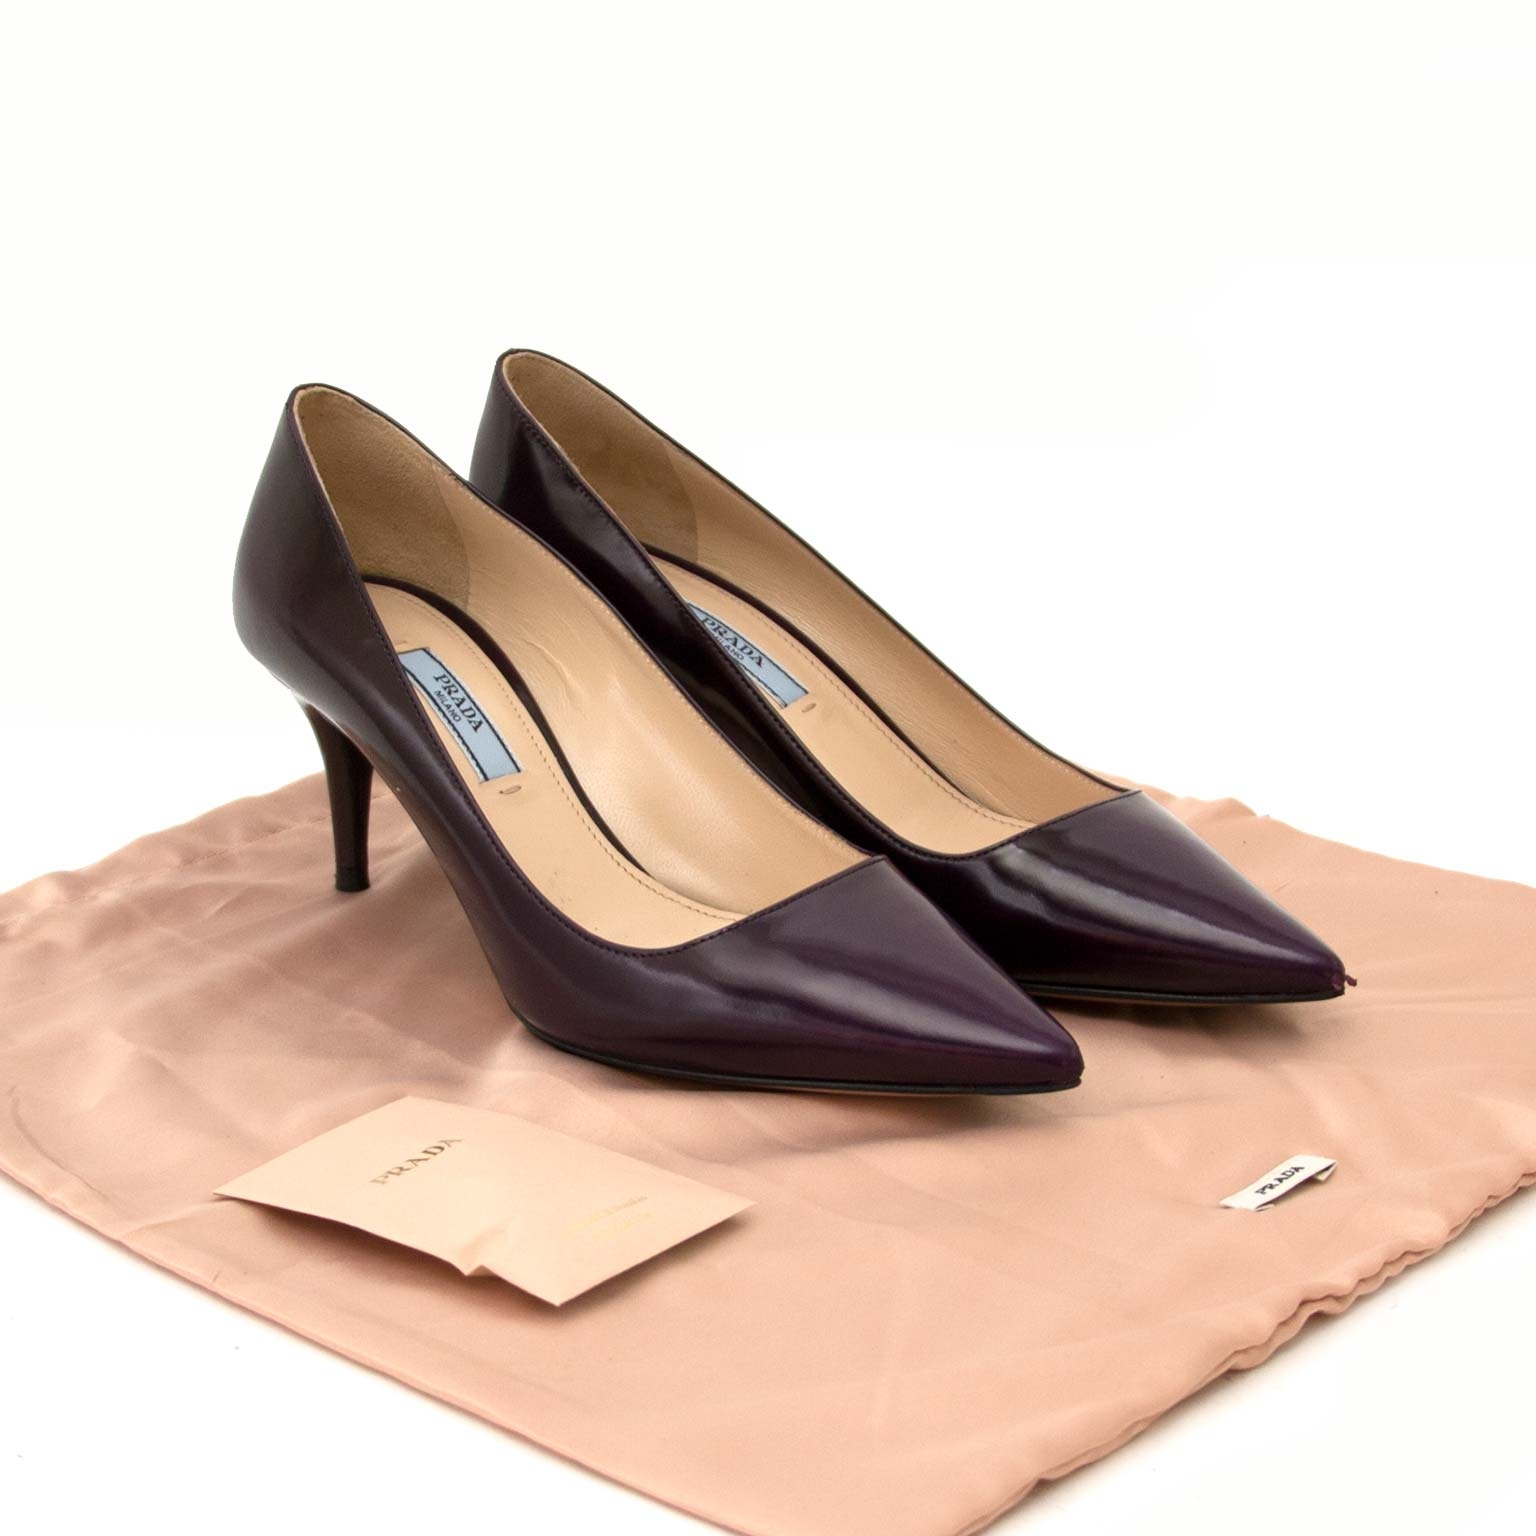 prada aubergine kitten heels for sale at labellov vintage fashion webshop for the lowest price